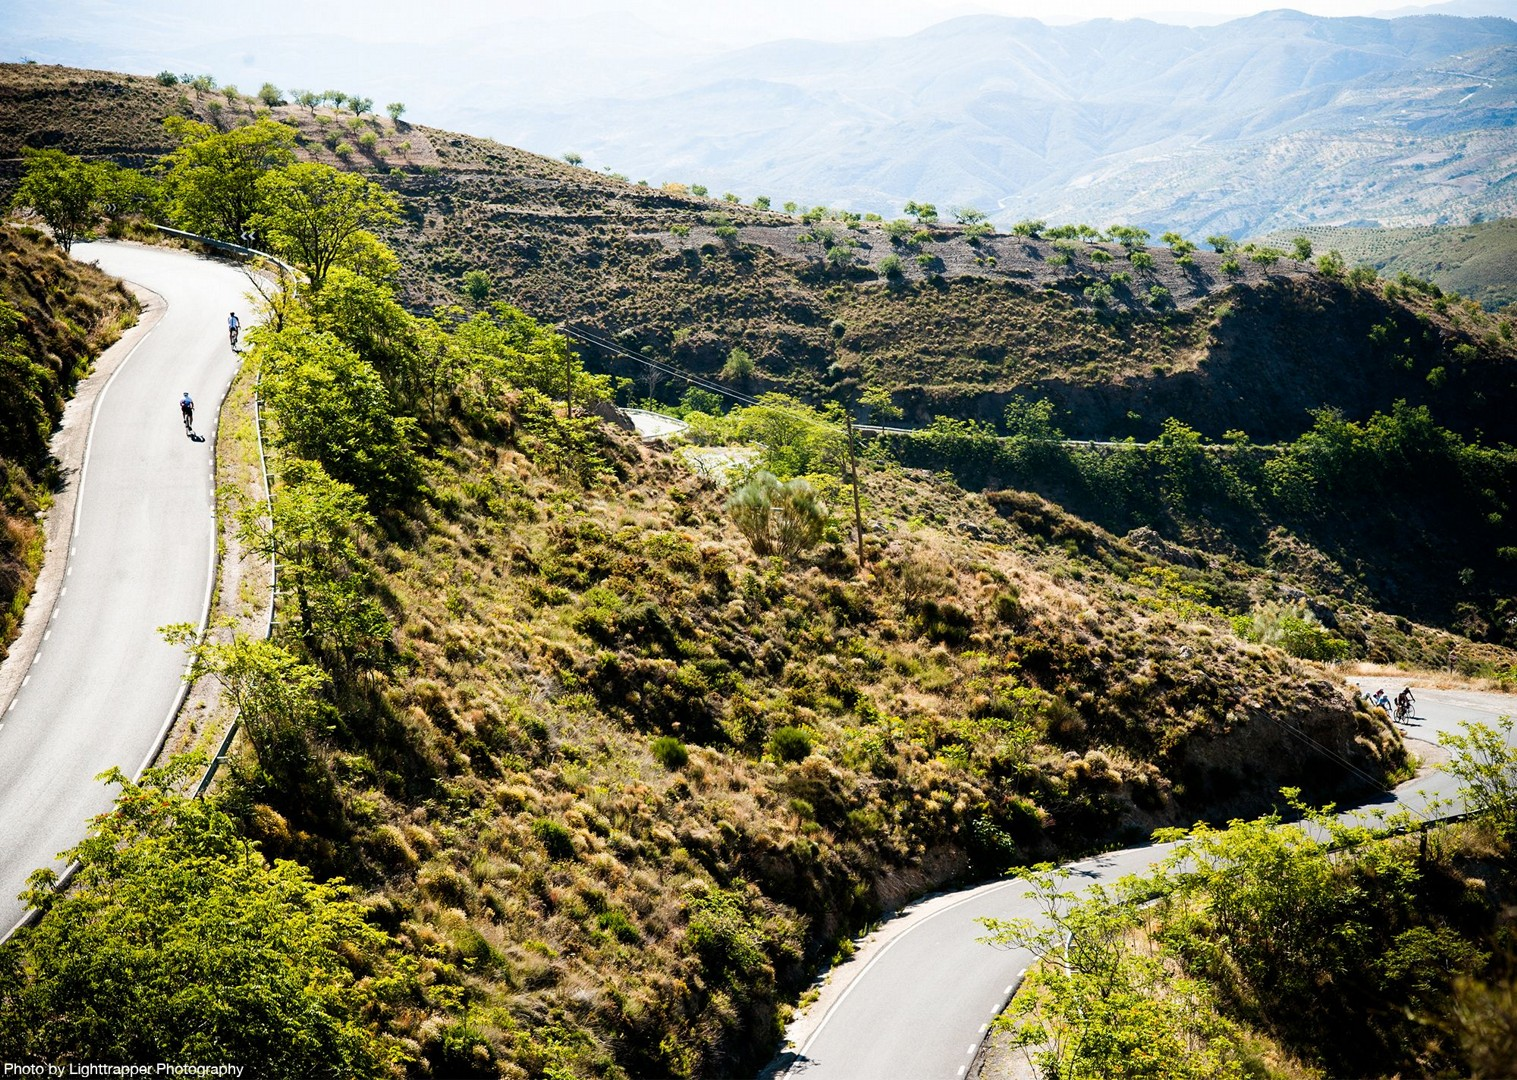 cycling-spain-mountains-road-cycling-sierra-nevada-and-granada-saddle-skedaddle.jpg - Southern Spain - Sierra Nevada and Granada - Guided Road Cycling Holiday - Road Cycling